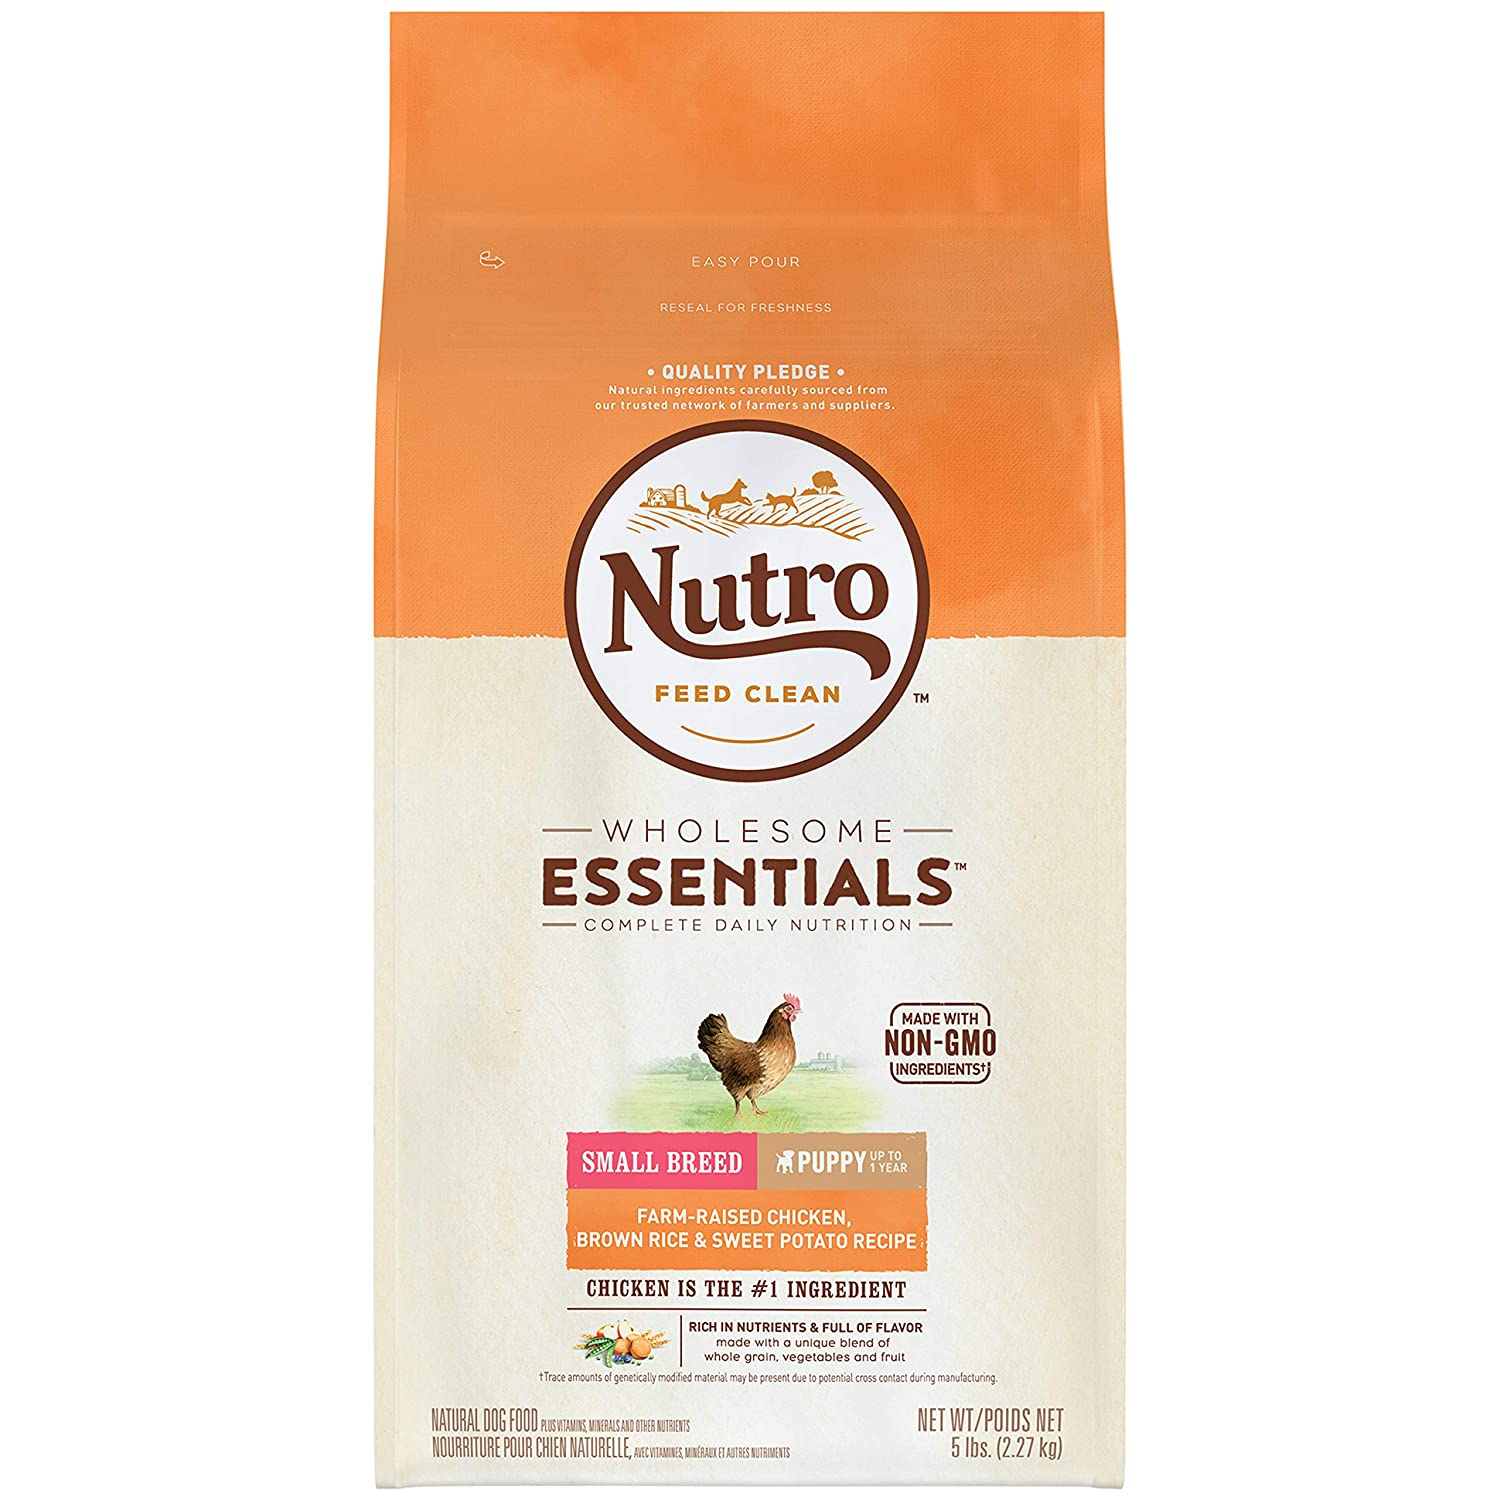 3.NUTRO Wholesome Essentials Puppy Dry Dog Food, All Breed Sizes